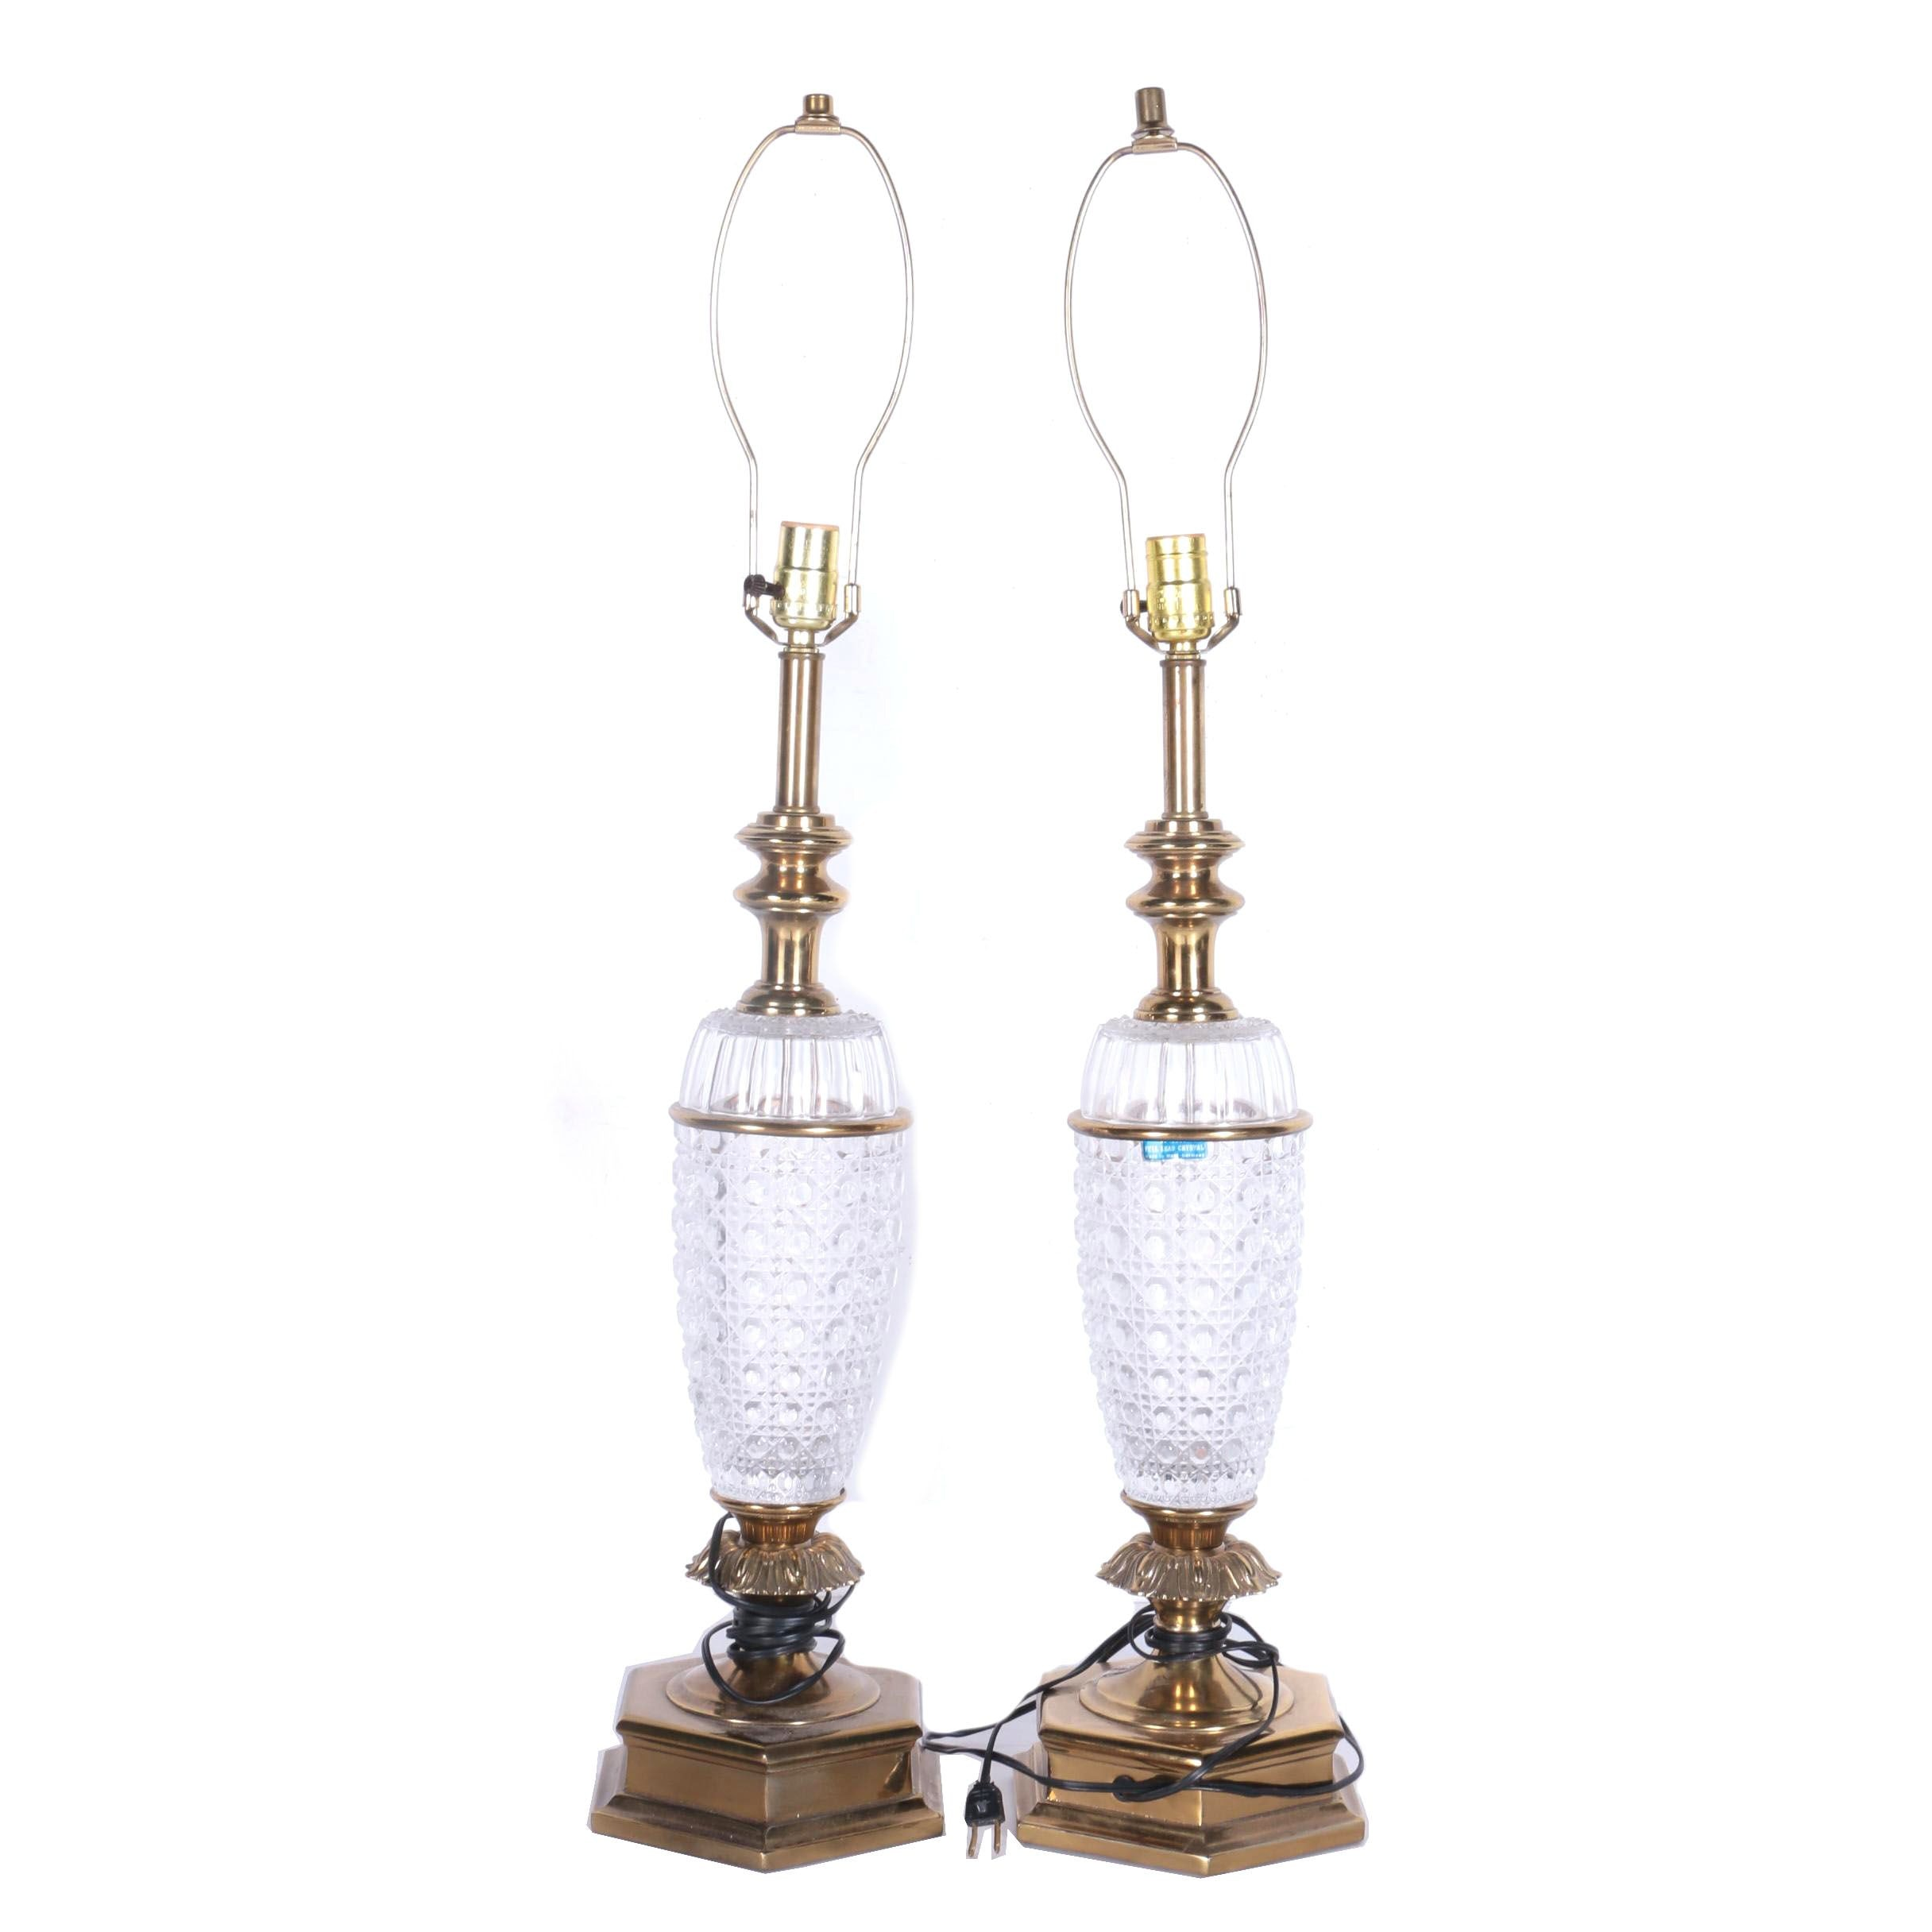 Two Full Lead Crystal Table Lamps